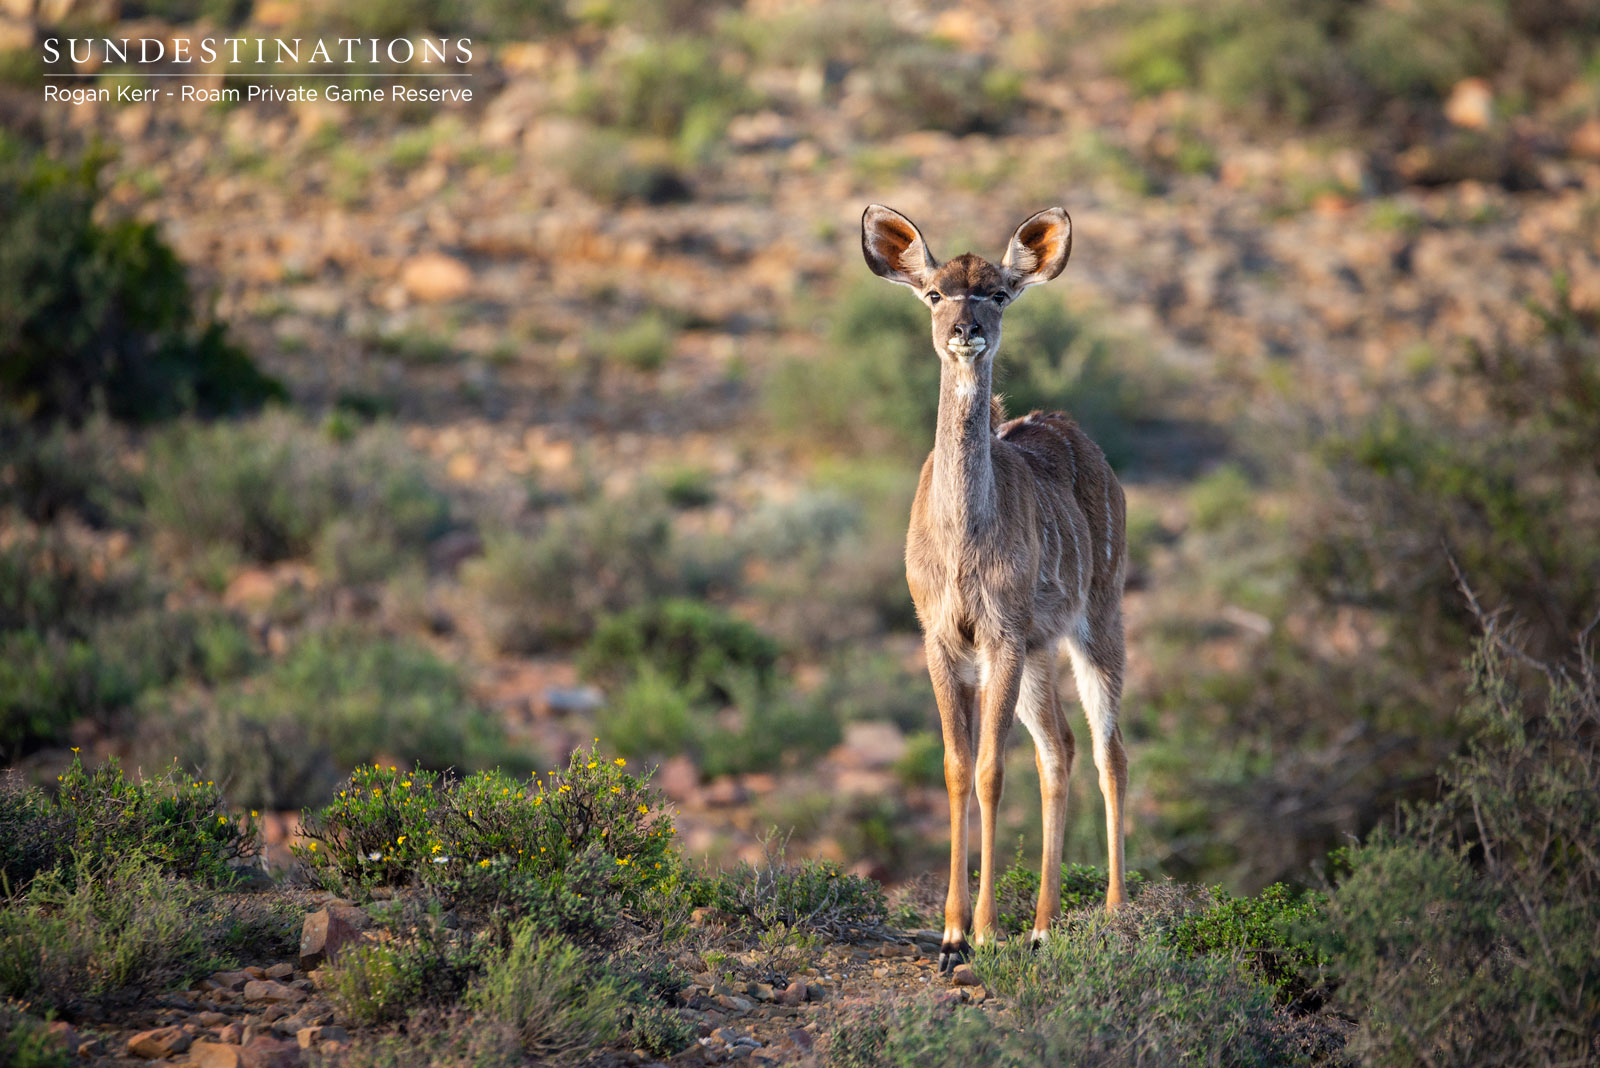 Kudu at Roam Private Game Reserve